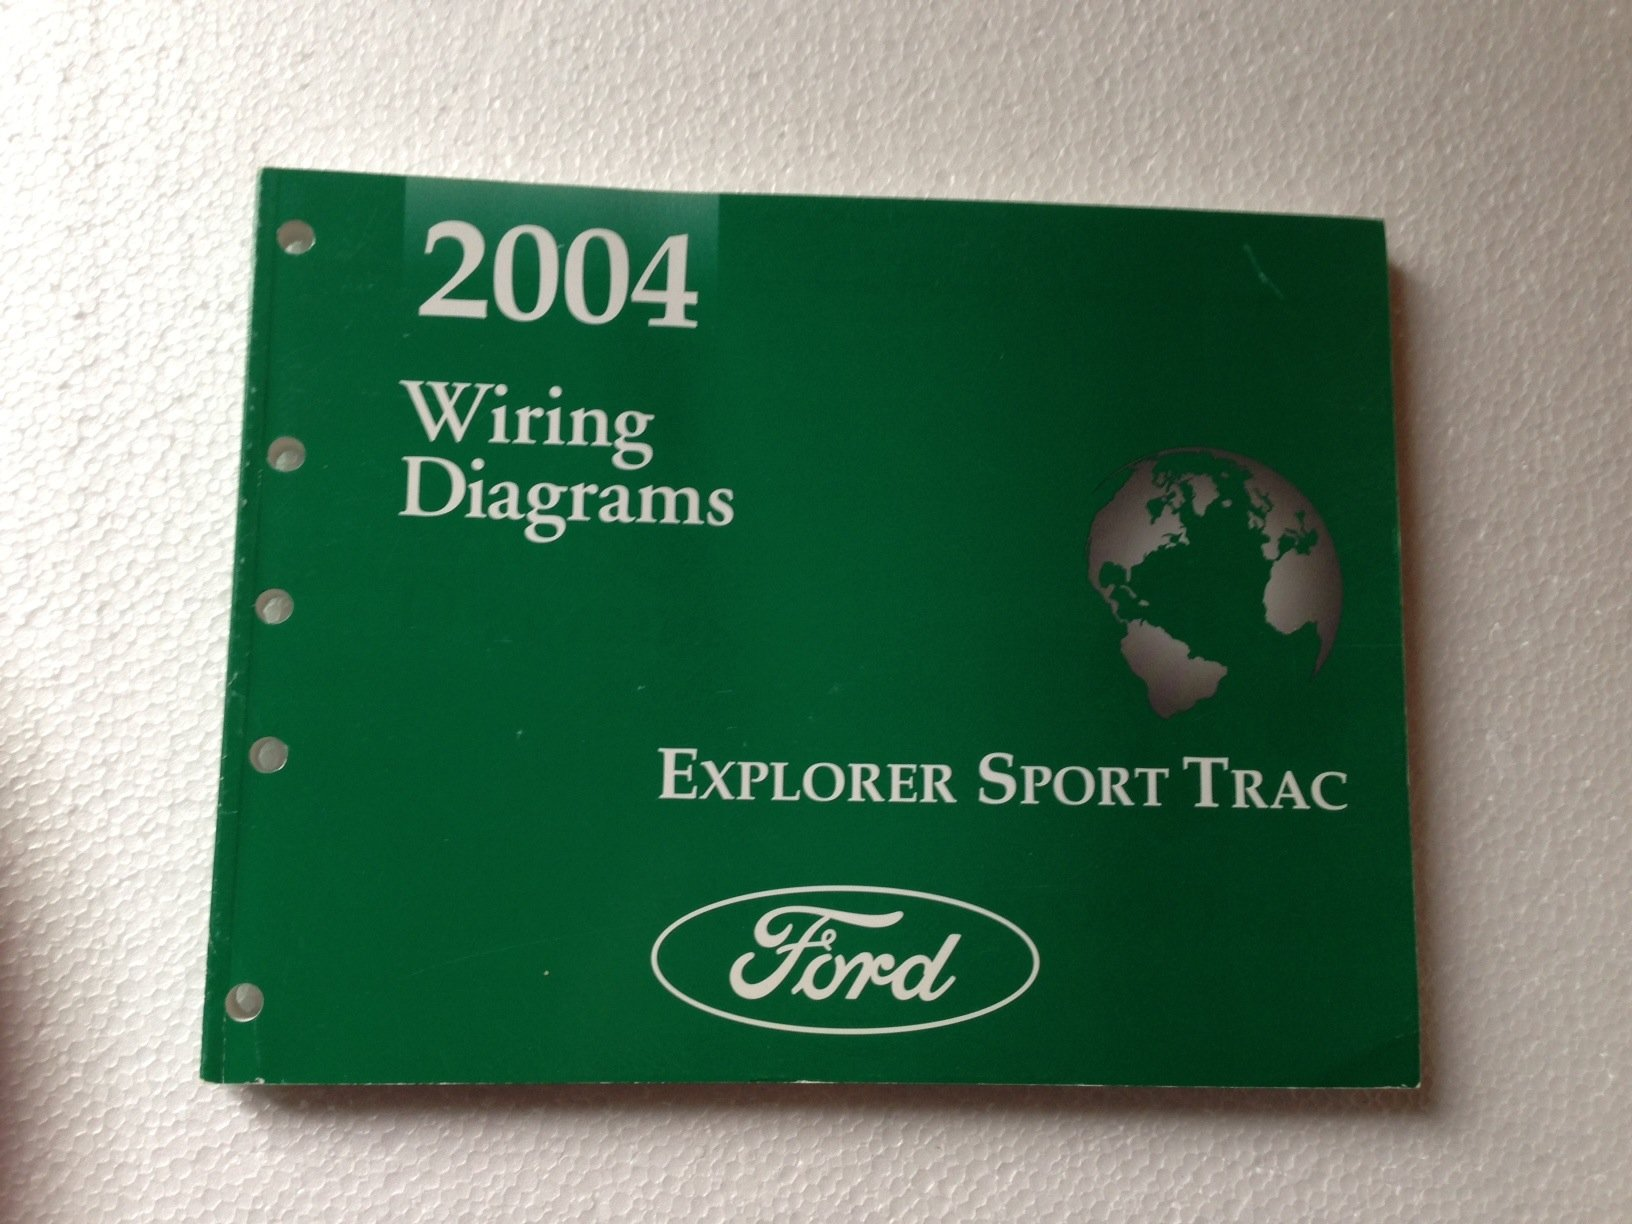 2003 ford explorer window wiring diagram 2004 ford explorer sport trac wiring diagrams ford motor company  2004 ford explorer sport trac wiring